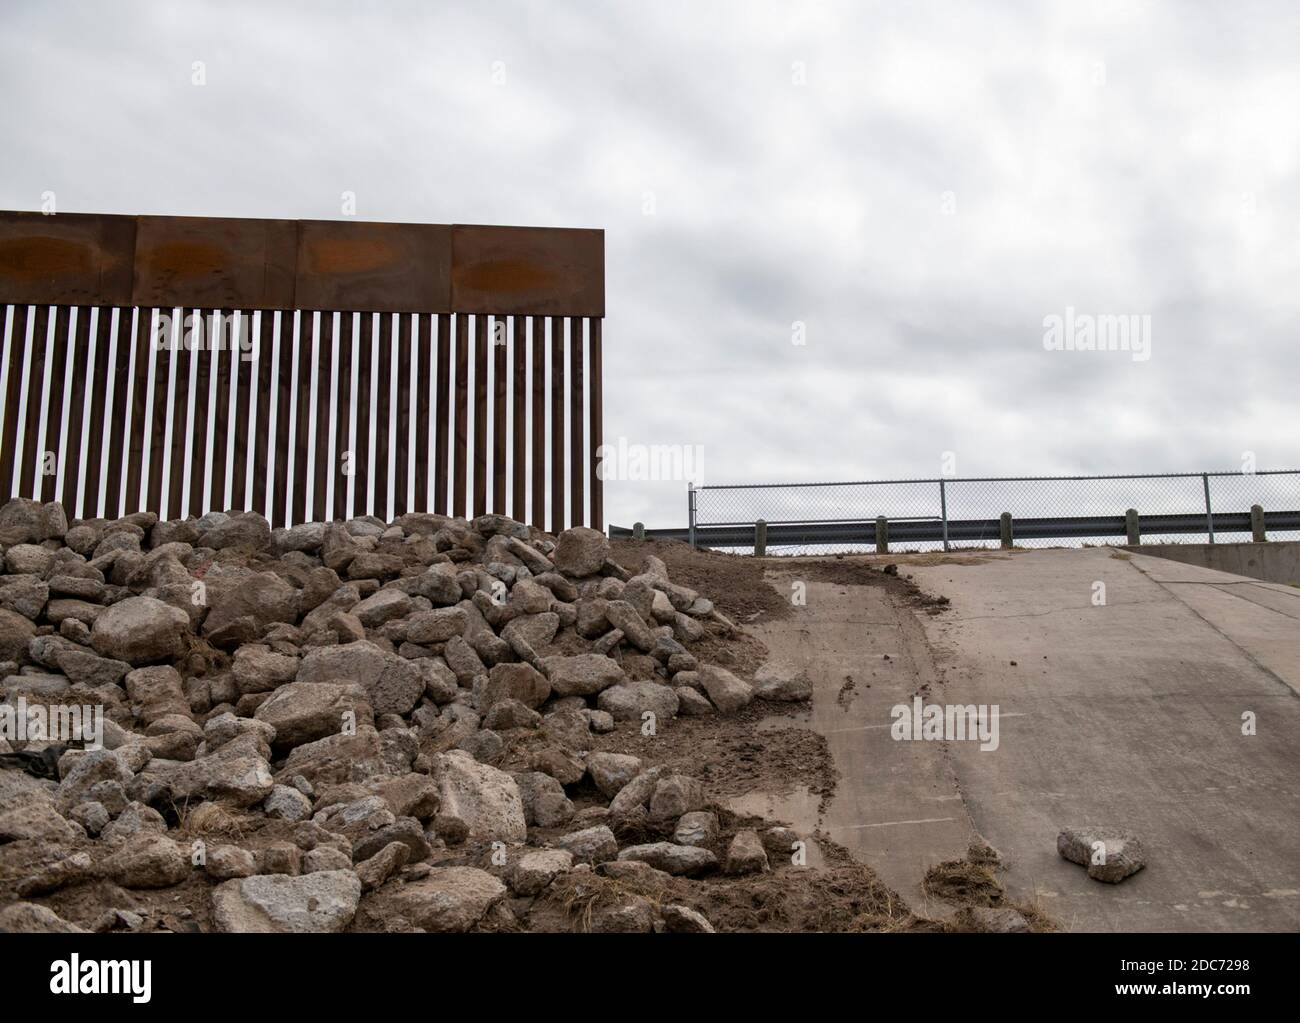 A section where the new Trump Wall meets the old barrier along the U.S. - Mexican border wall October 28, 2020 near McAllen, Texas. Stock Photo